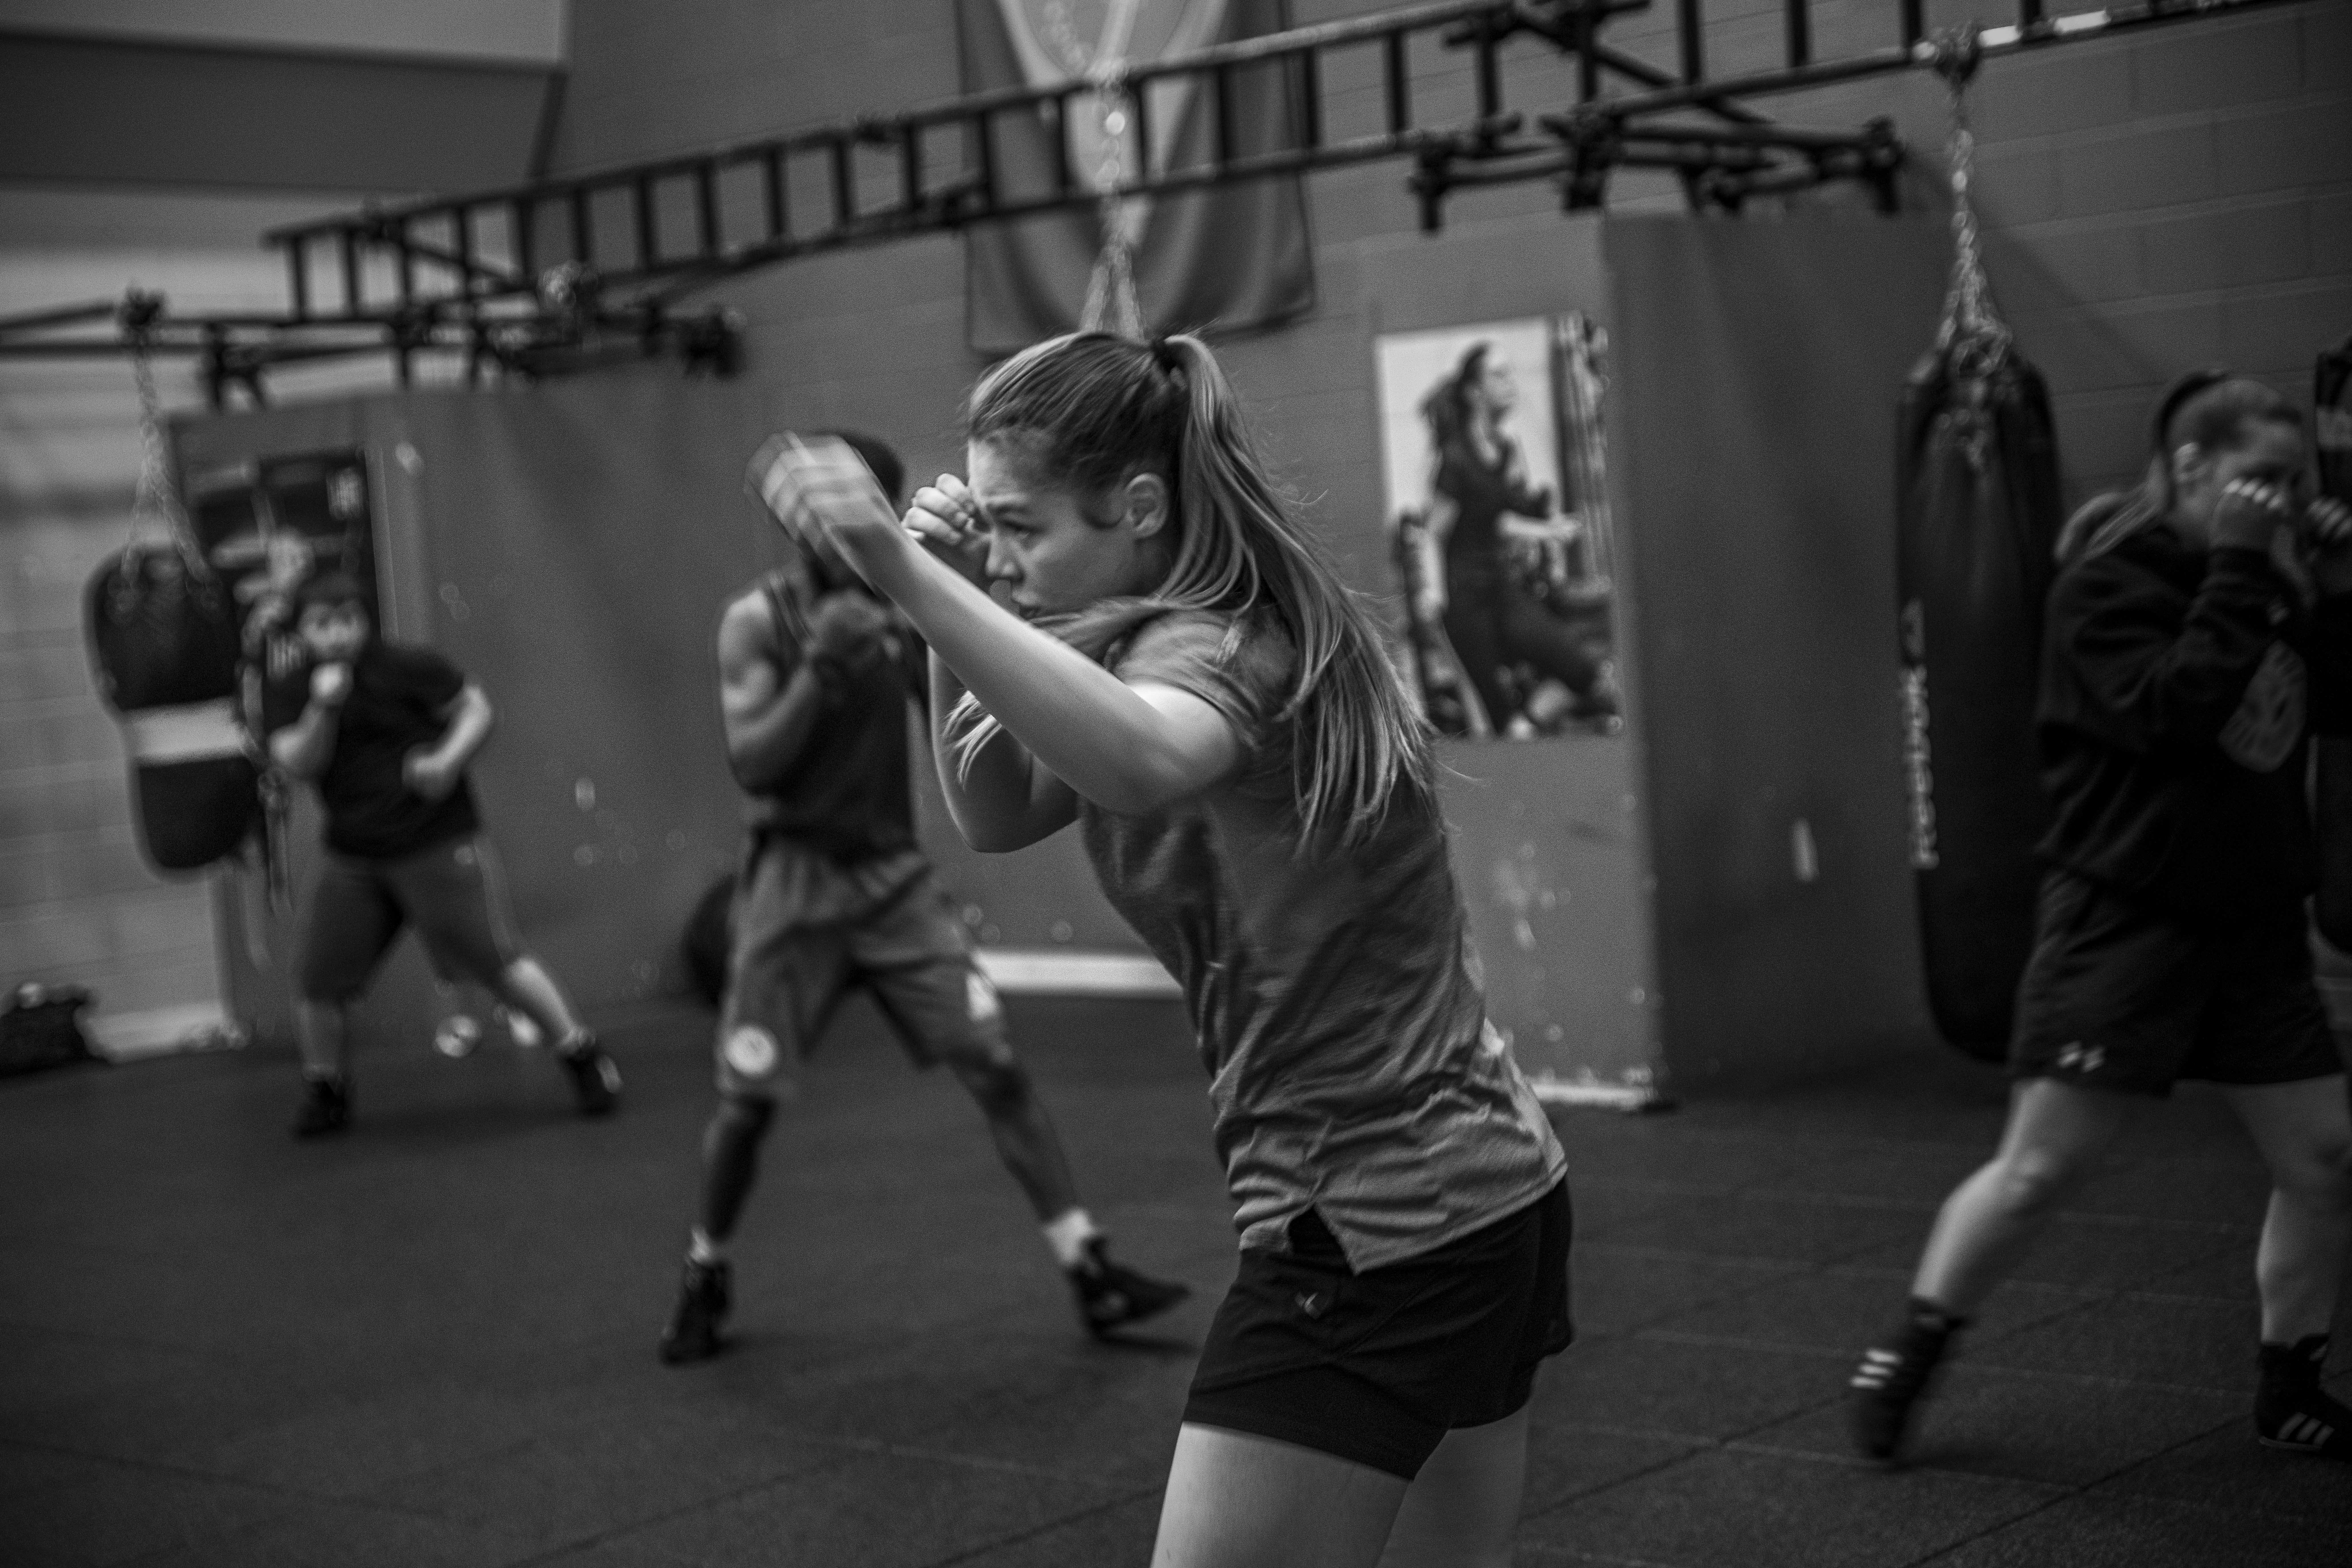 Woman at boxing practice